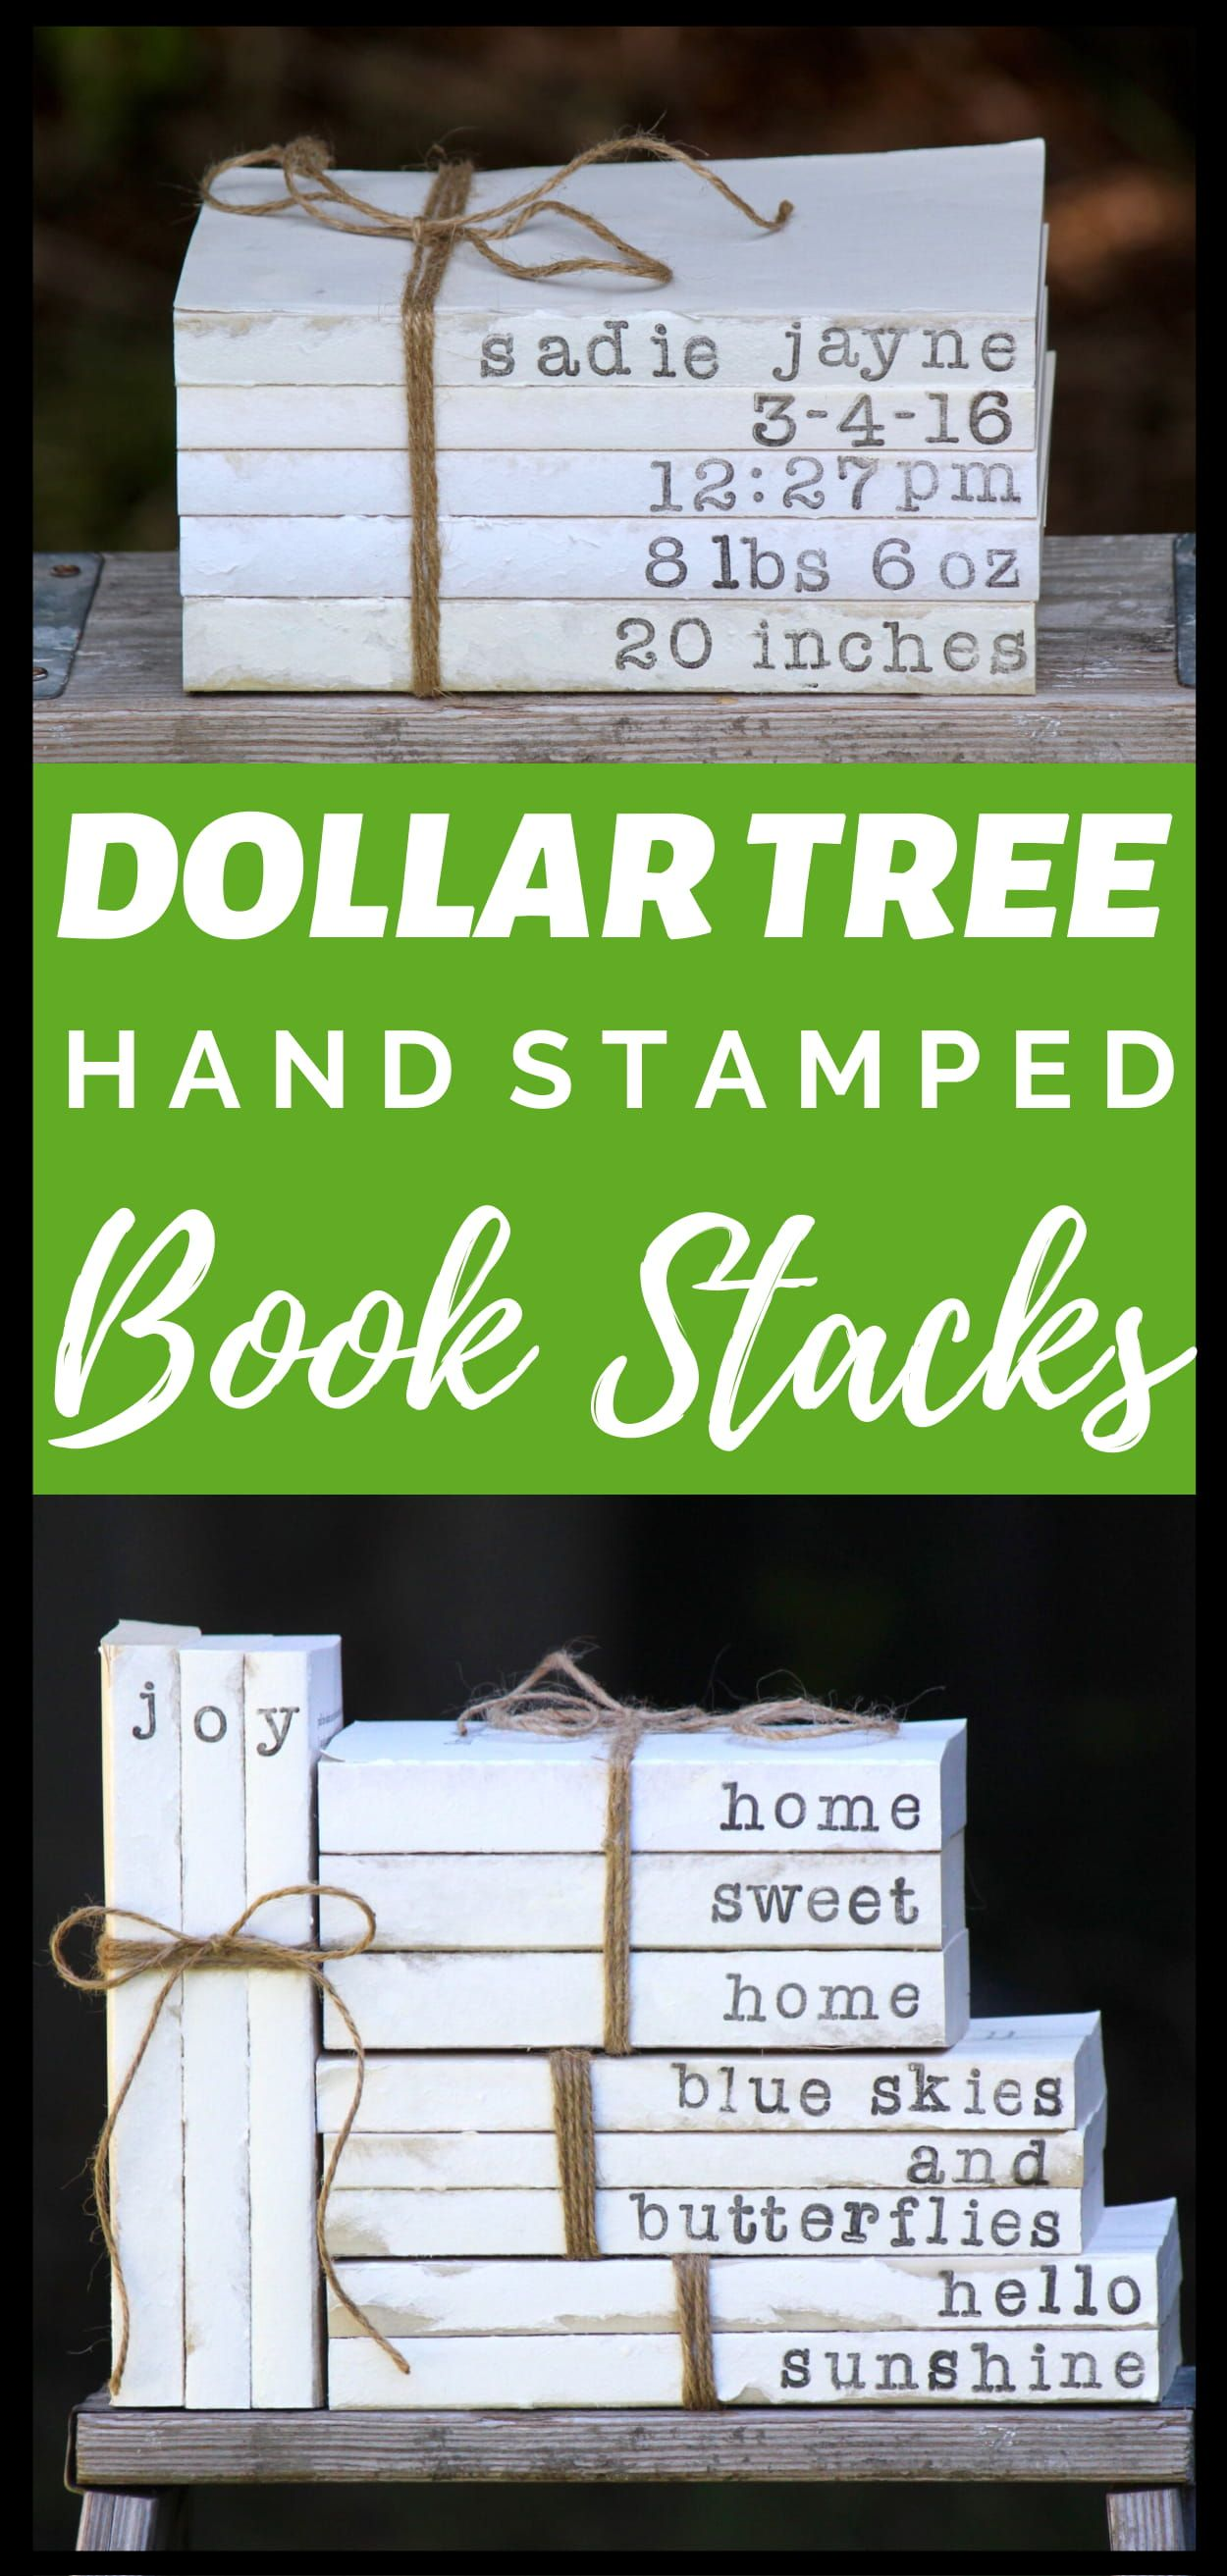 DIY Dollar Tree Hand Stamped Book Stacks